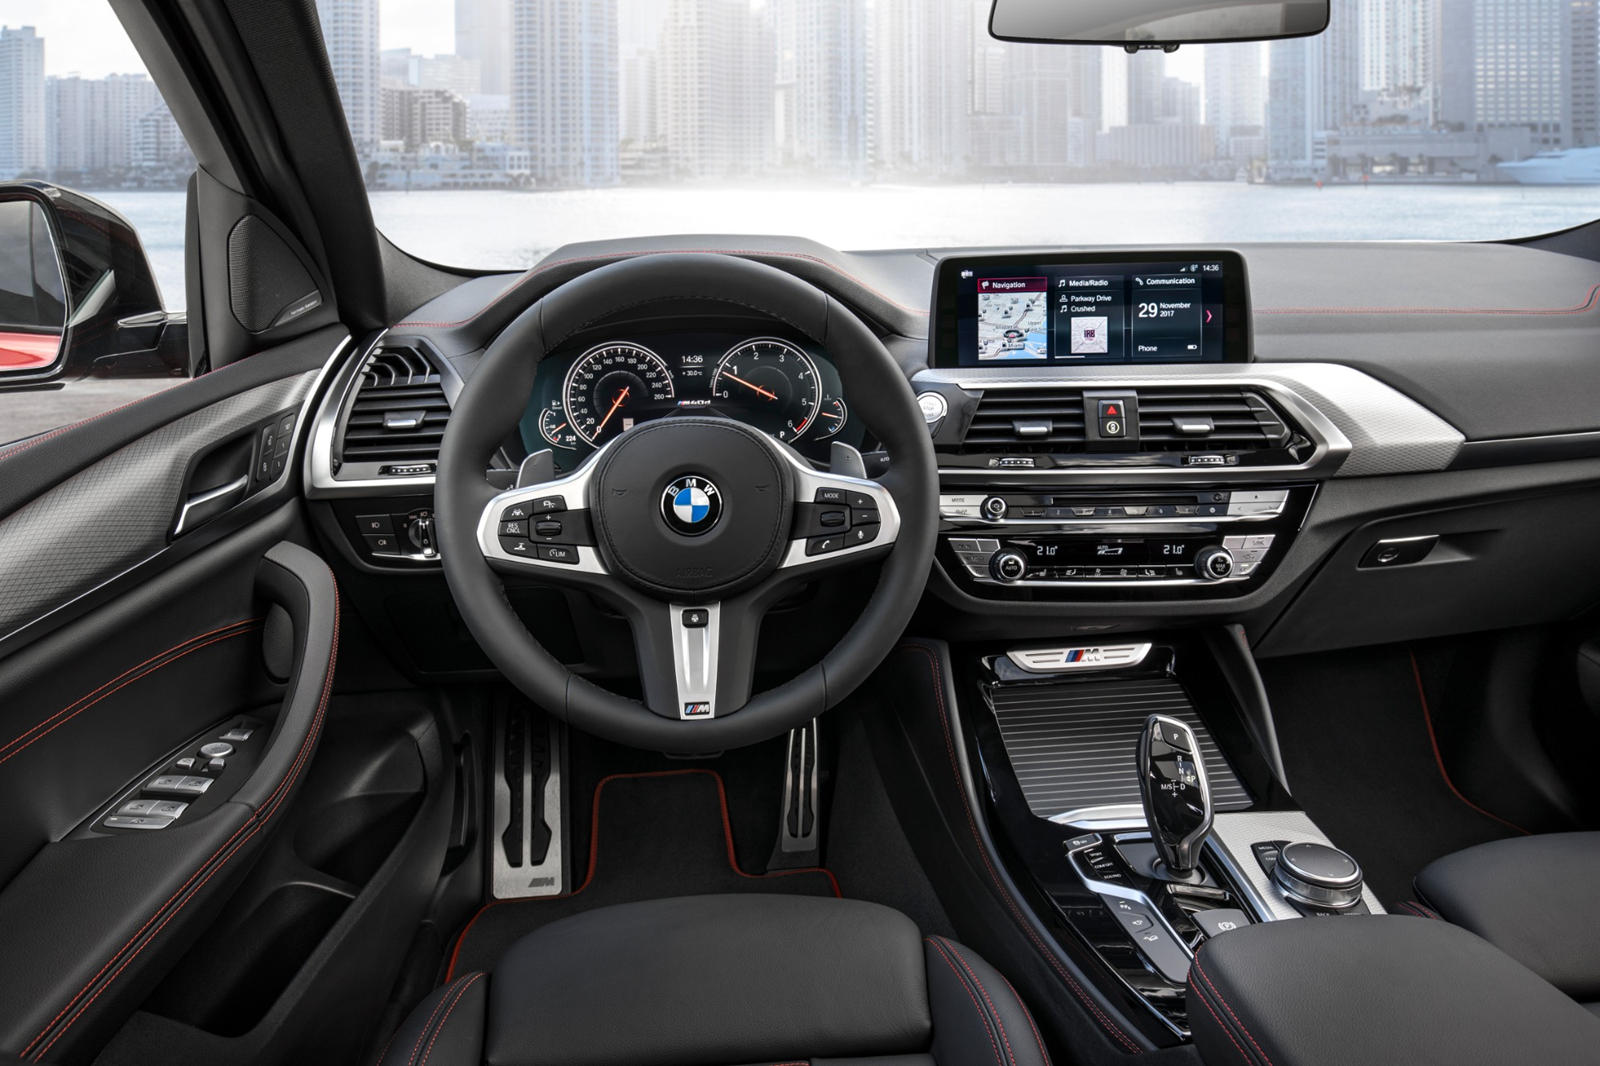 2020 BMW X6 SUV Interior